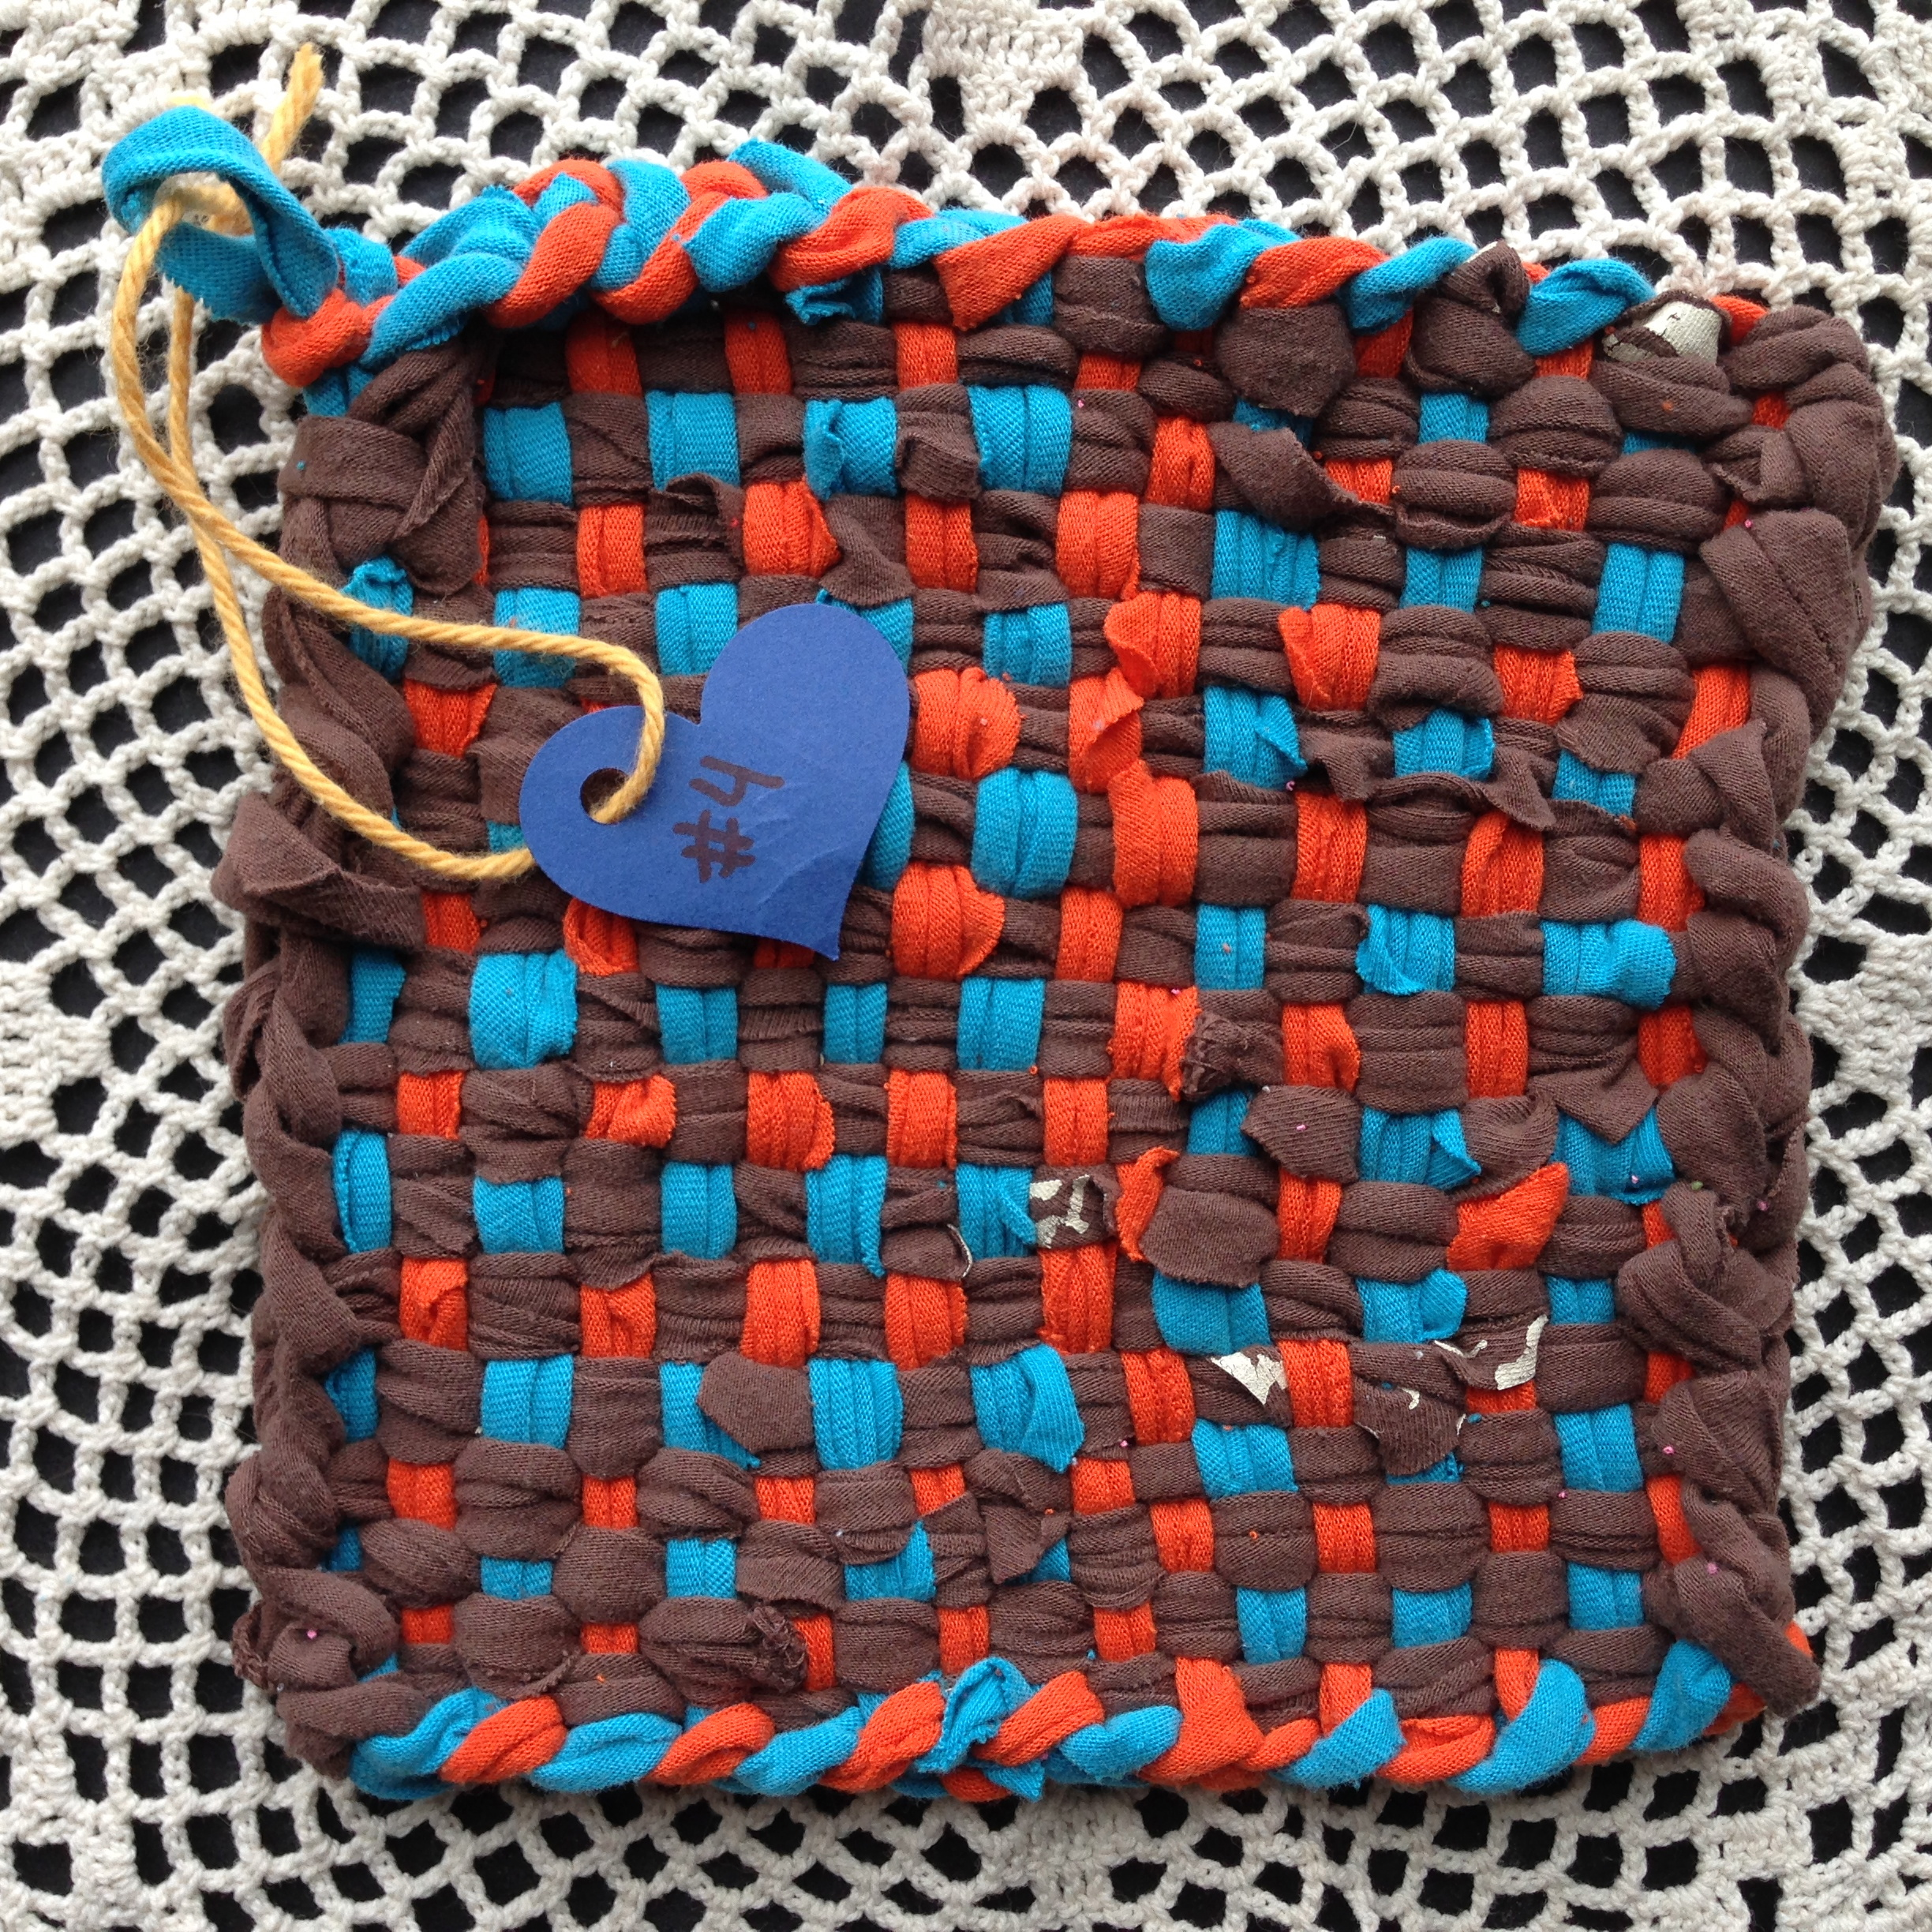 Potholder LOVE: A fundraiser to help the Wes Leonard Heart Foundation get more AEDs in schools